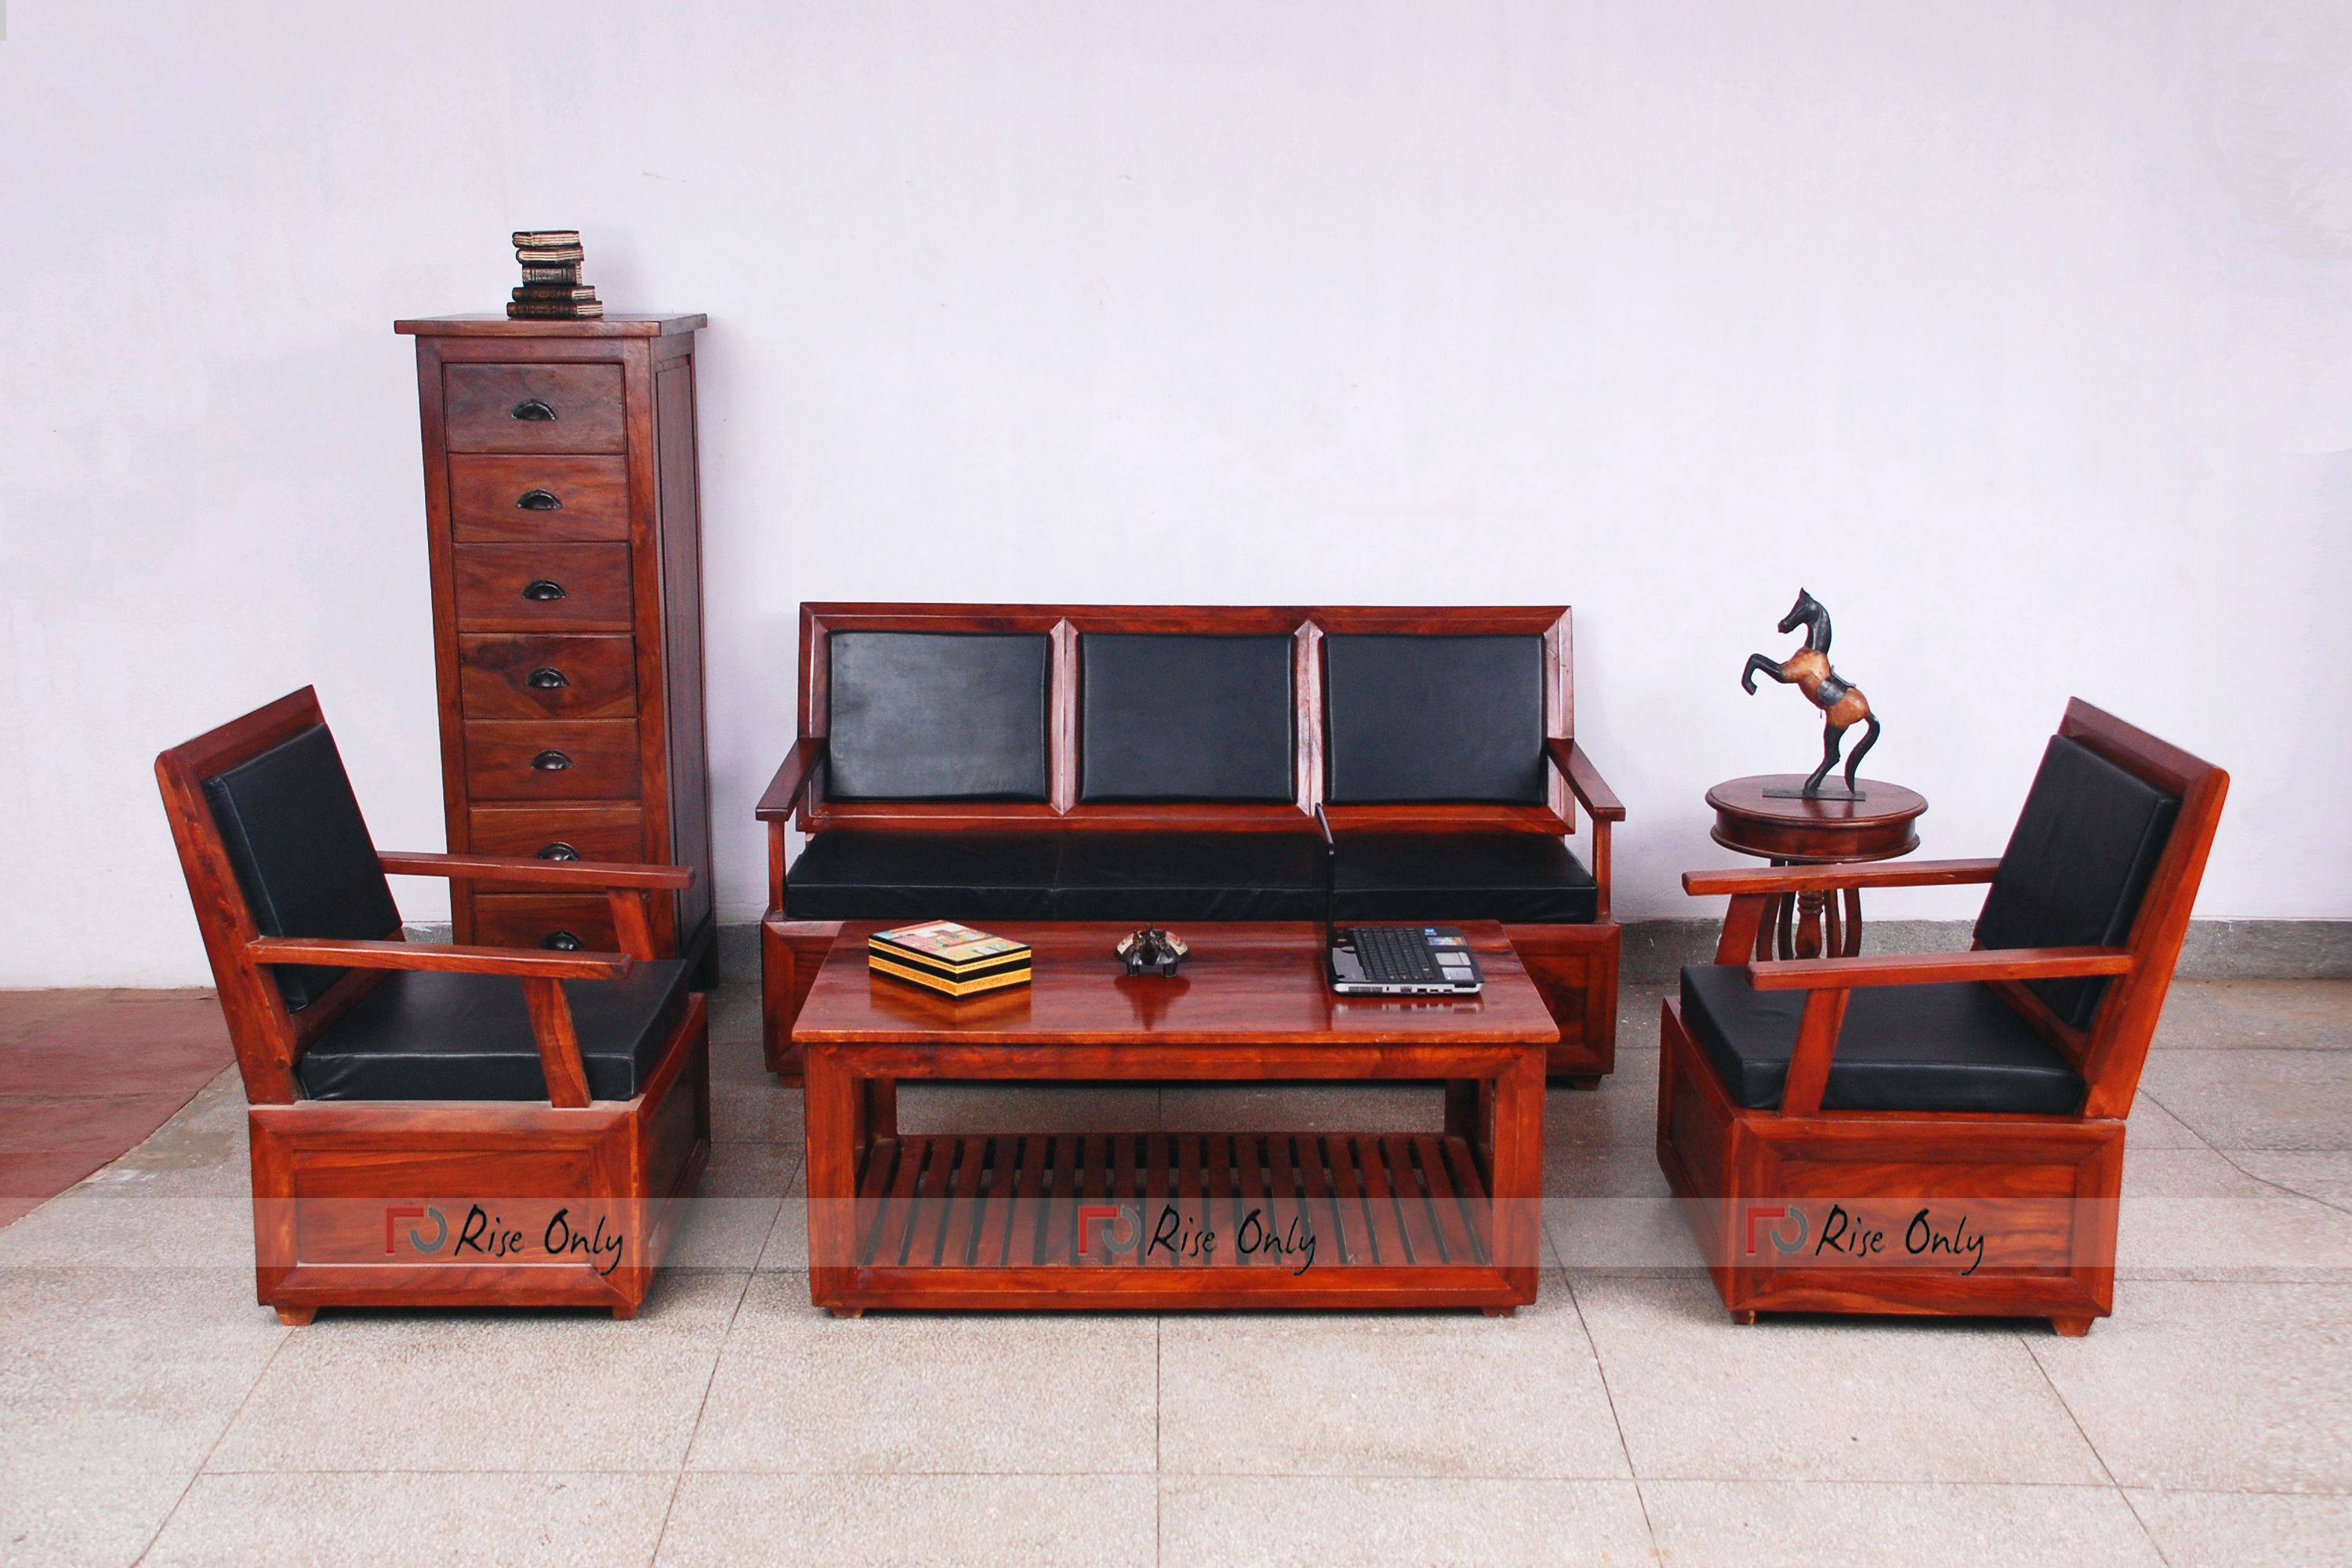 Living Room Theme Based Wooden Sofa Set Will Make Your Room More